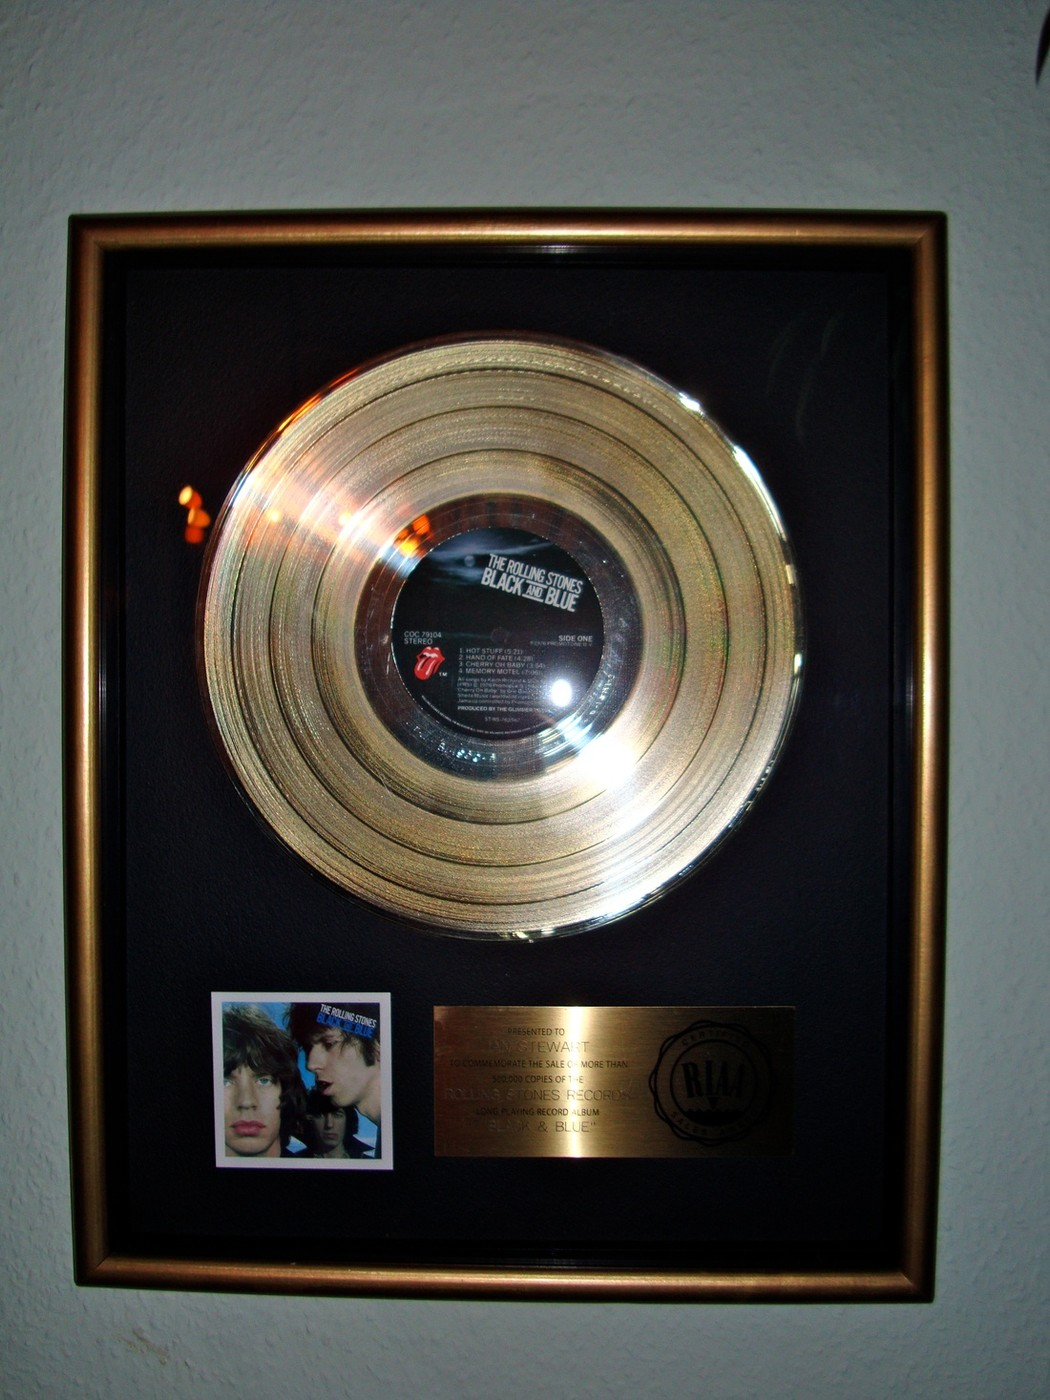 Rolling Stones RIAA Award for